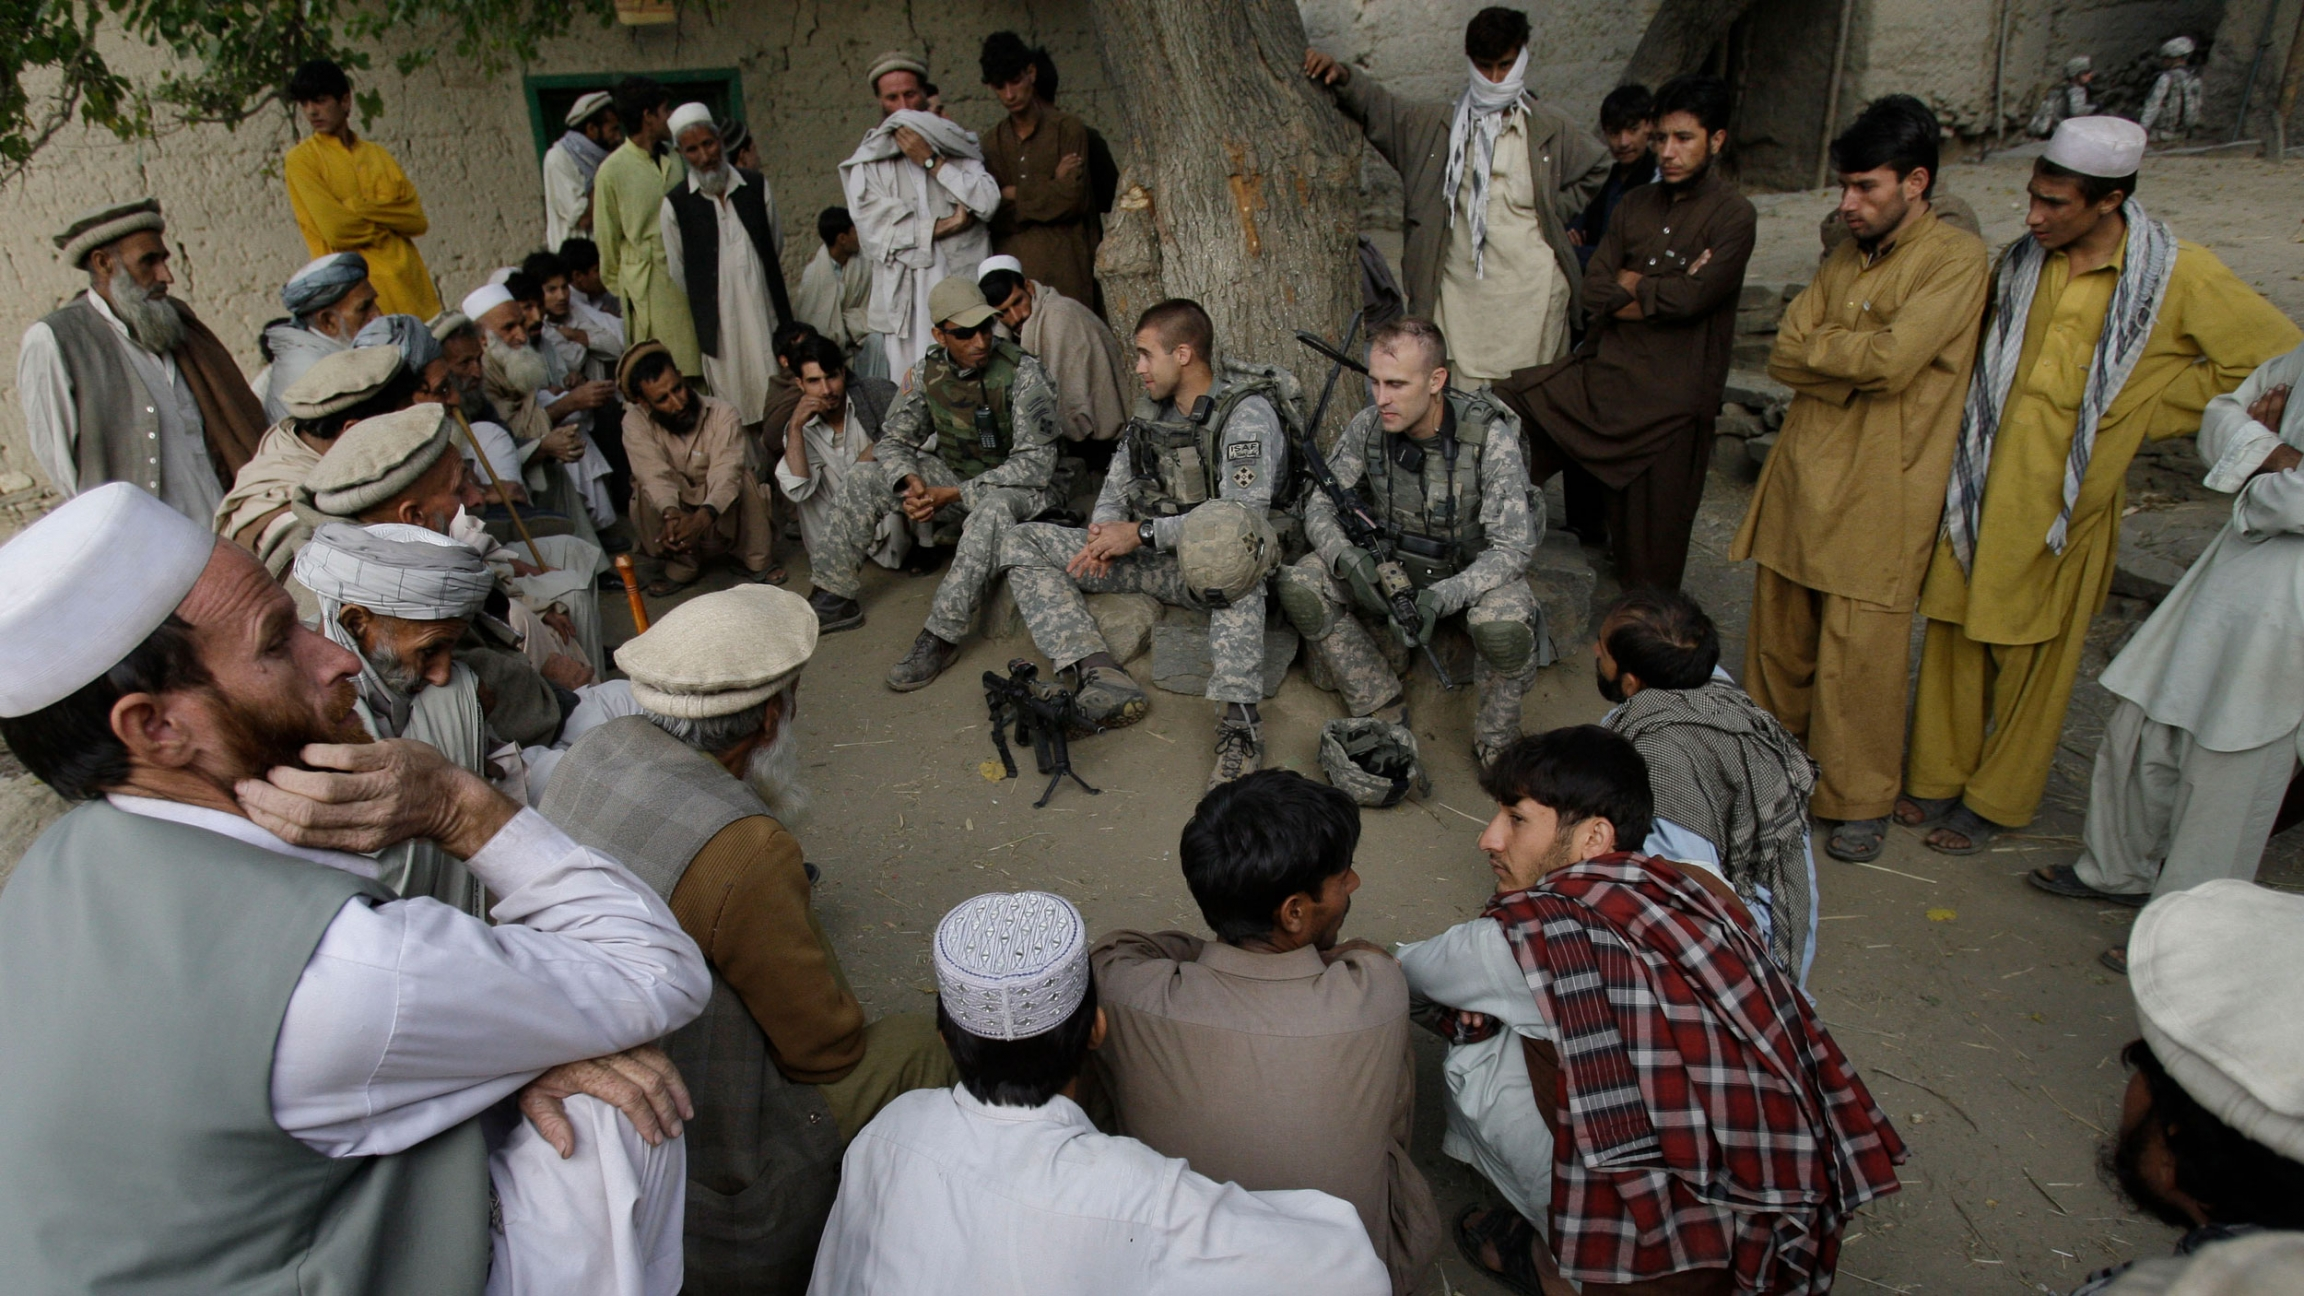 Lt. Thomas Goodman meets with villagers in Qatar Kala in the Pech Valley of Afghanistan's Kunar province with his interpreter Ayazudin Hilal.